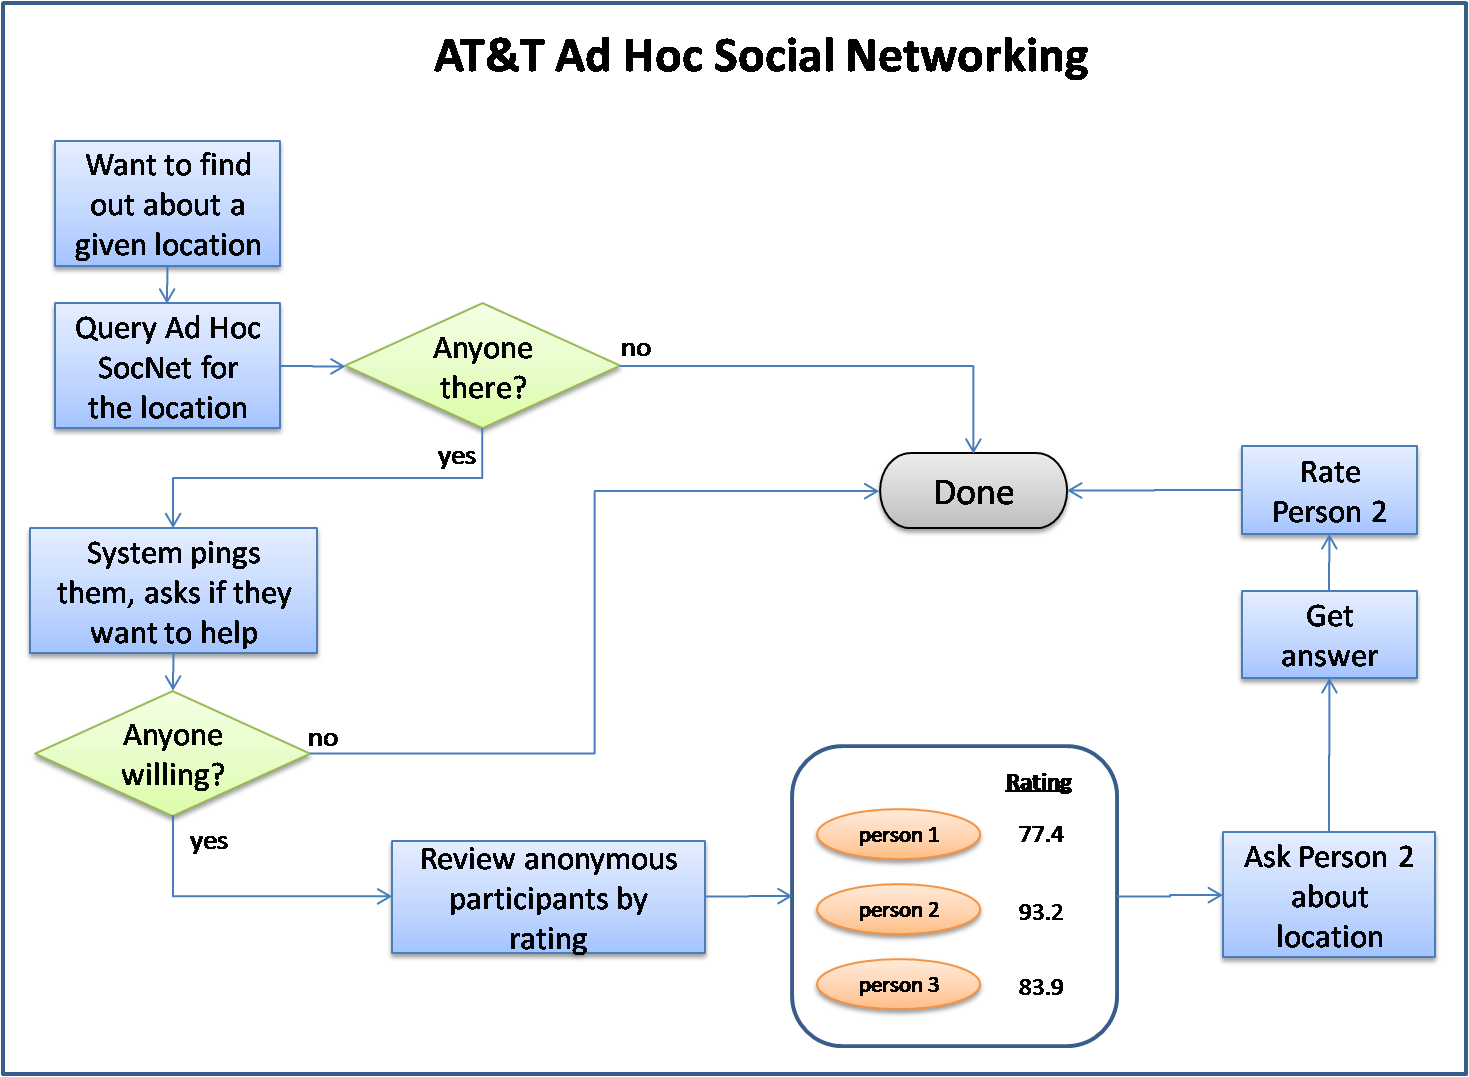 Ad Hoc Social Networking process flow